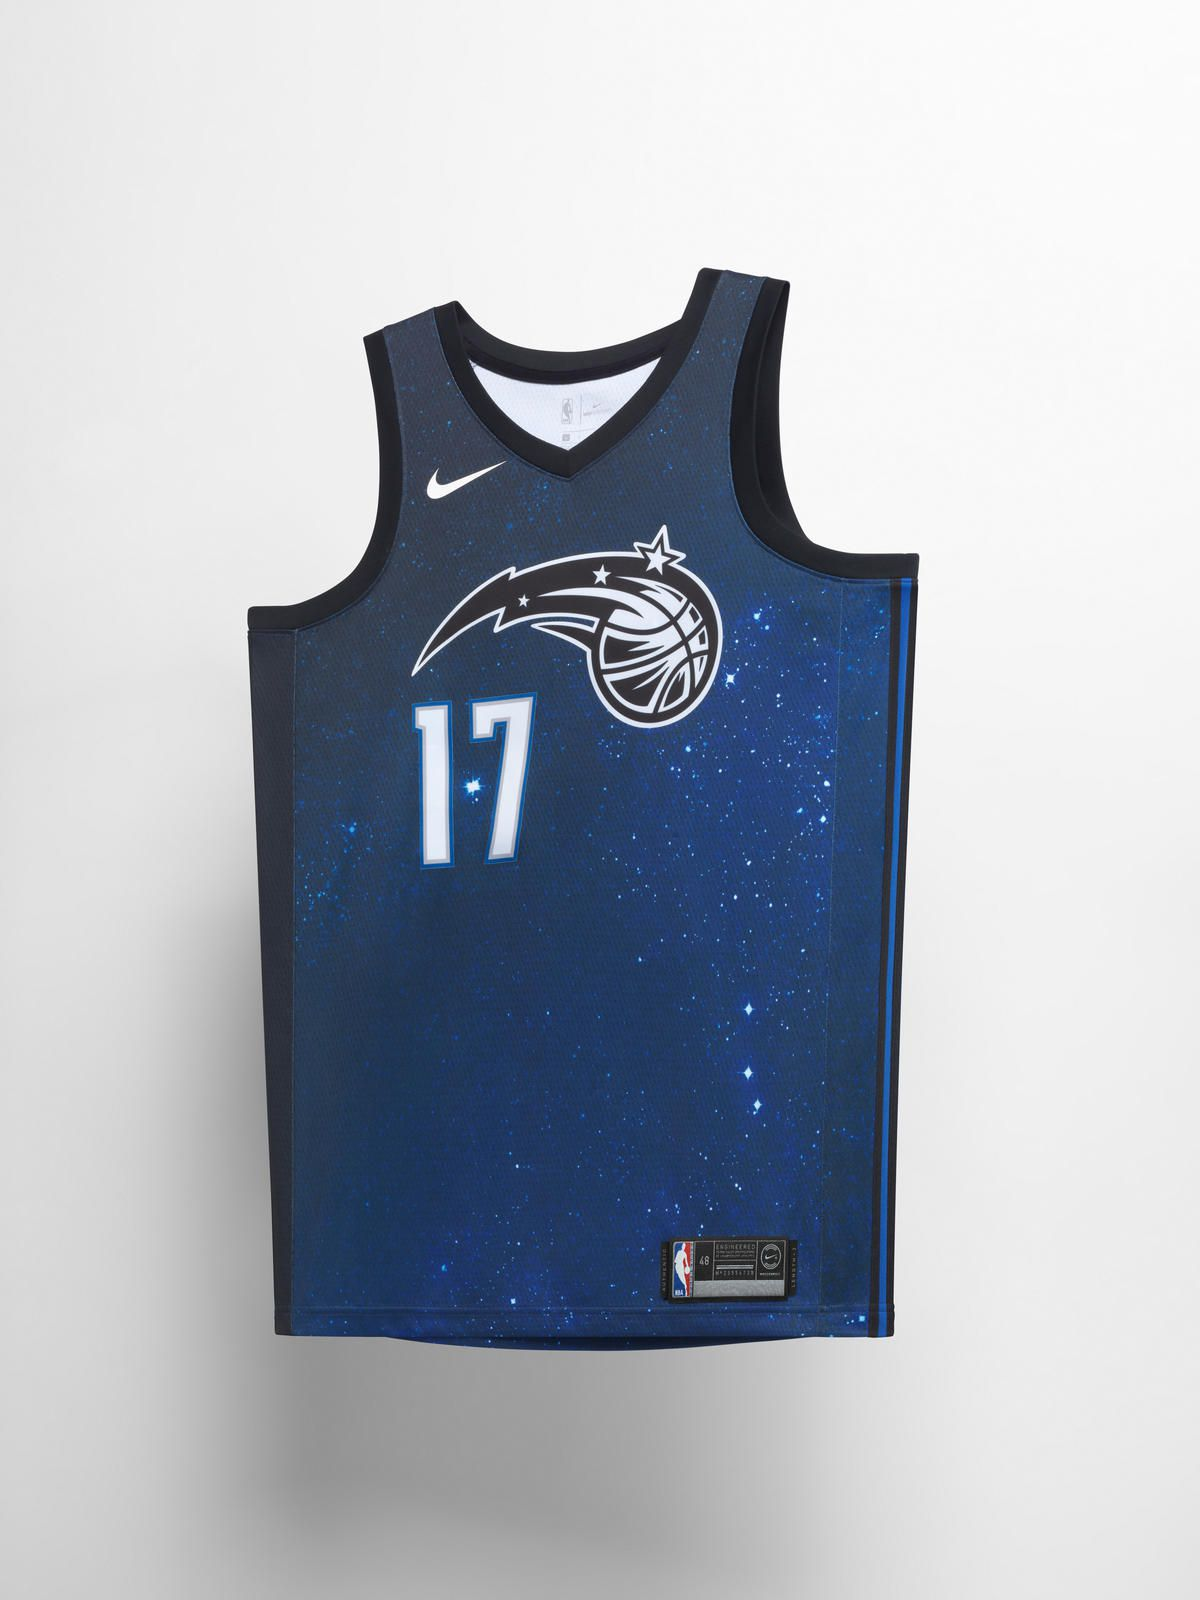 733571e0f80 Nike NBA City Jerseys: The good, the bad and the ugly - SBNation.com